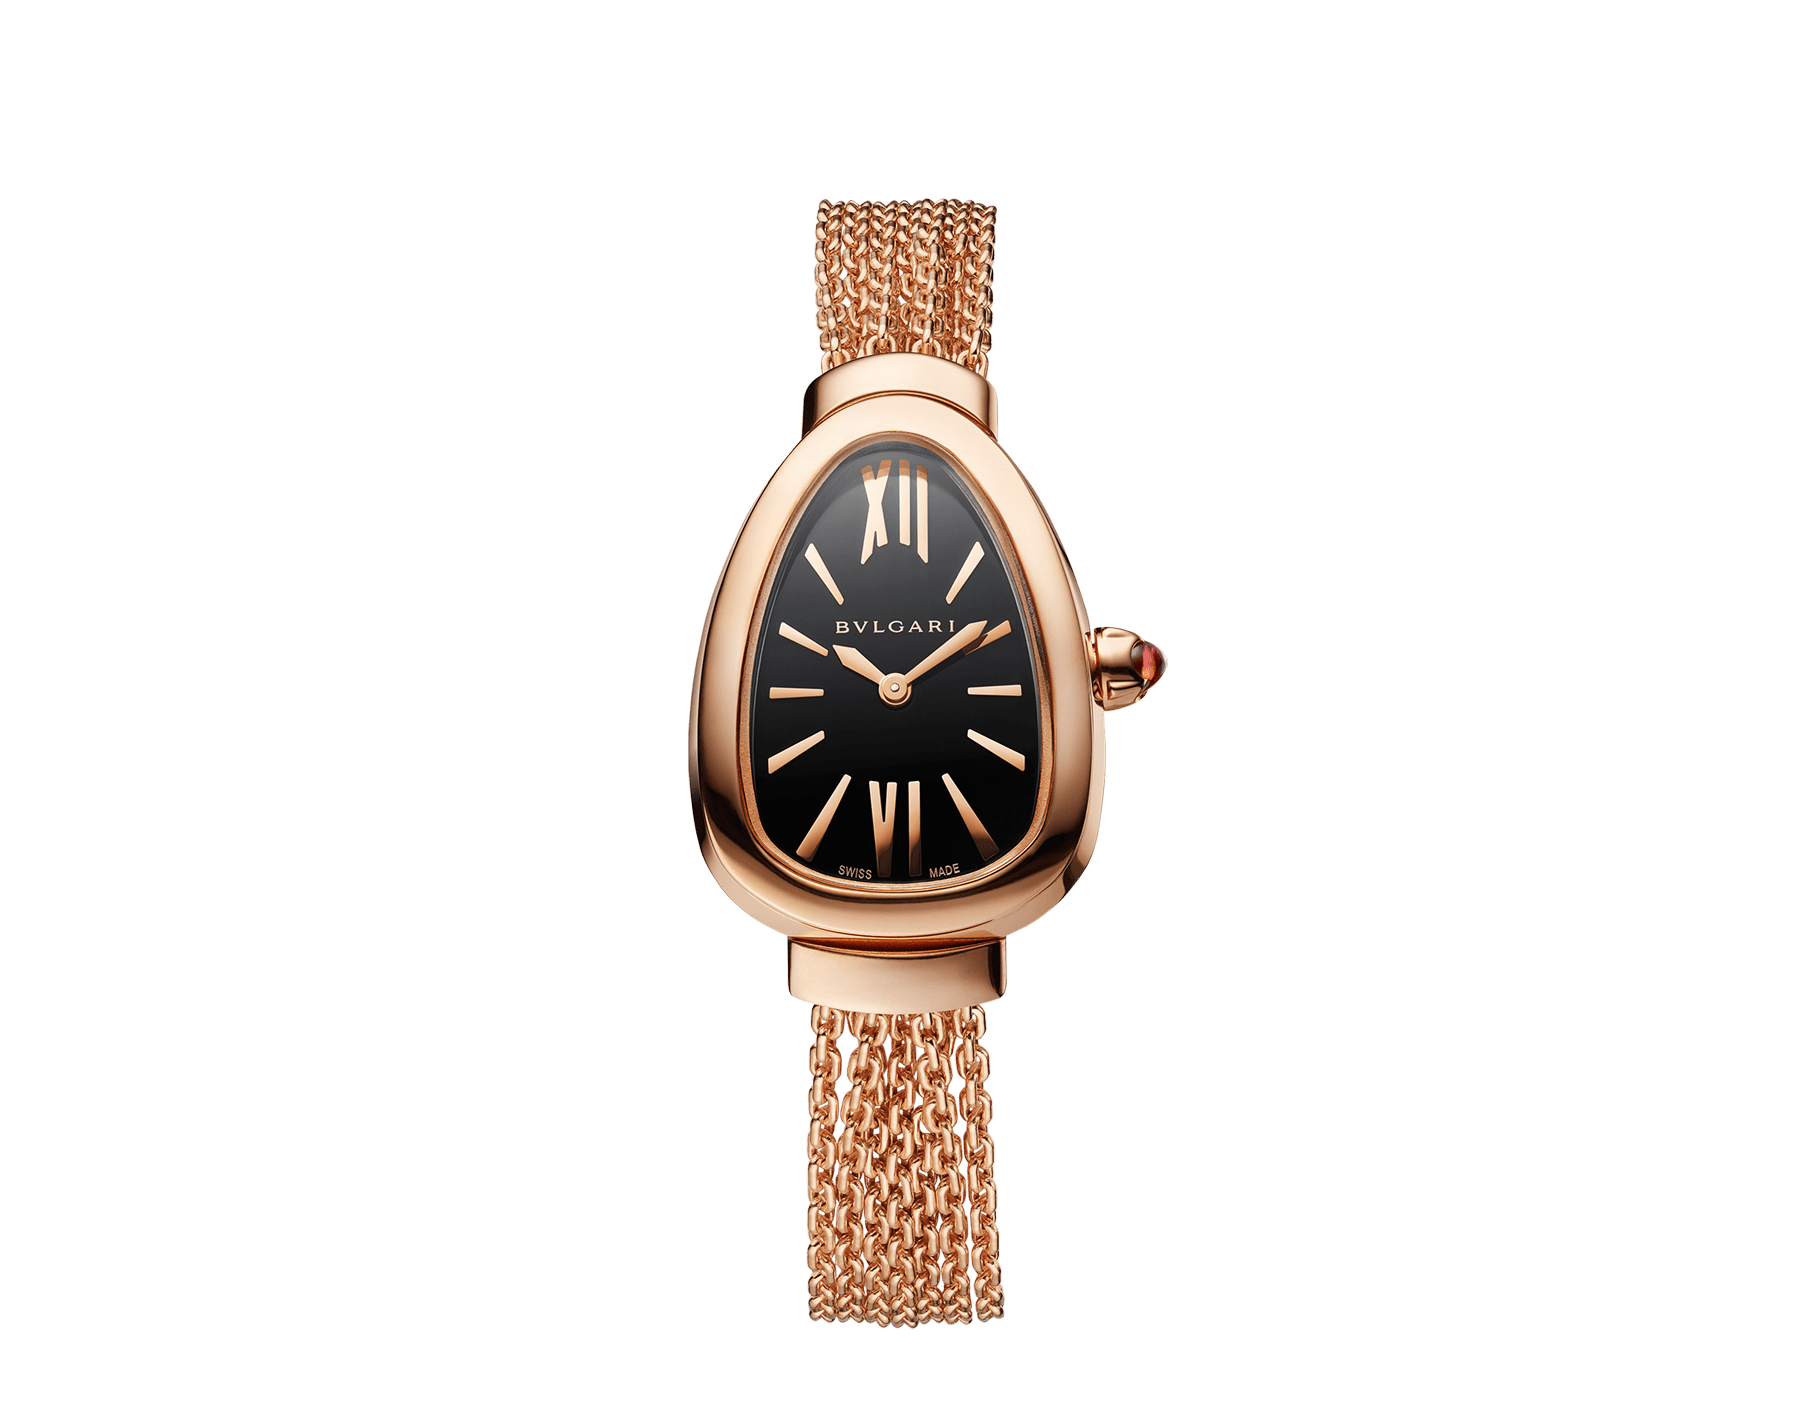 Serpenti watch in 18 kt rose gold case and interchangeable chain bracelet, with black lacquered dial 102728 image 1